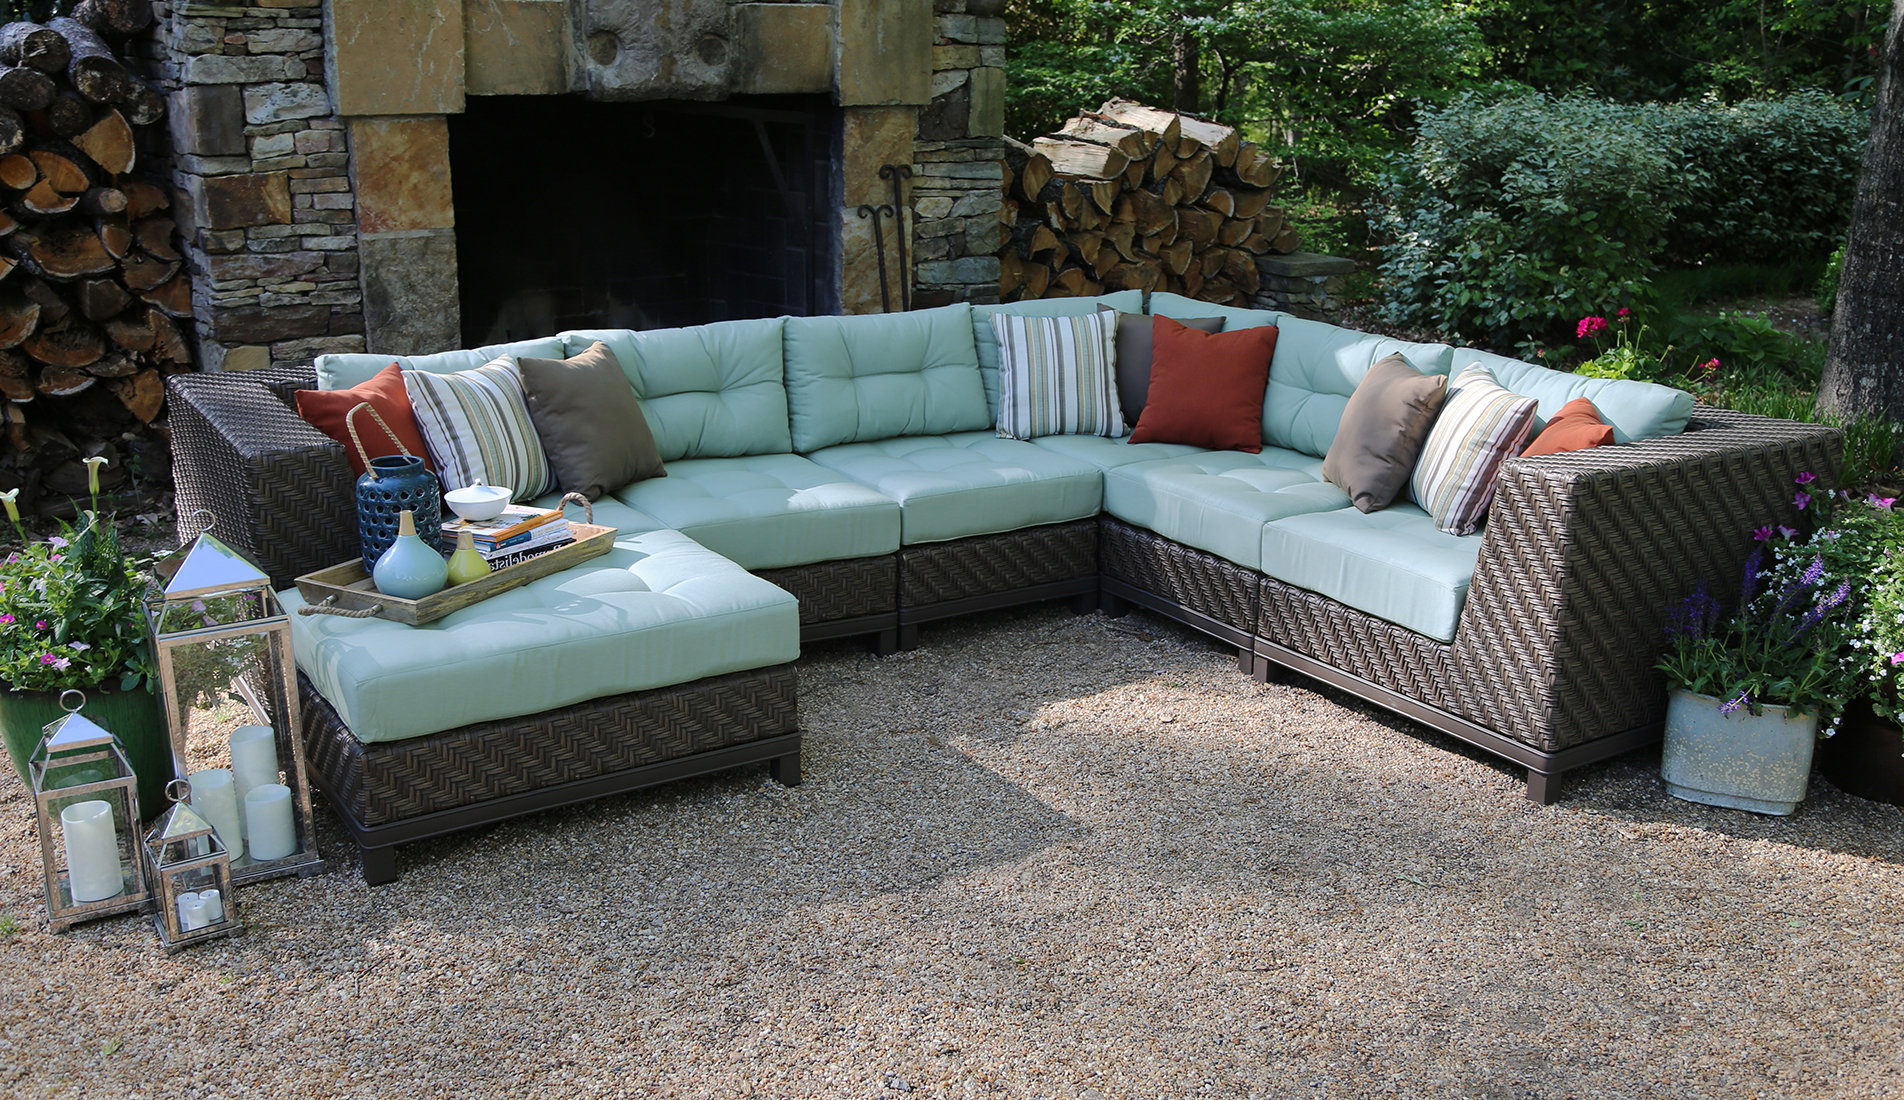 Nabors Patio Sectional With Sunbrella Cushions For Most Recently Released Madison Avenue Patio Sectionals With Sunbrella Cushions (View 15 of 20)